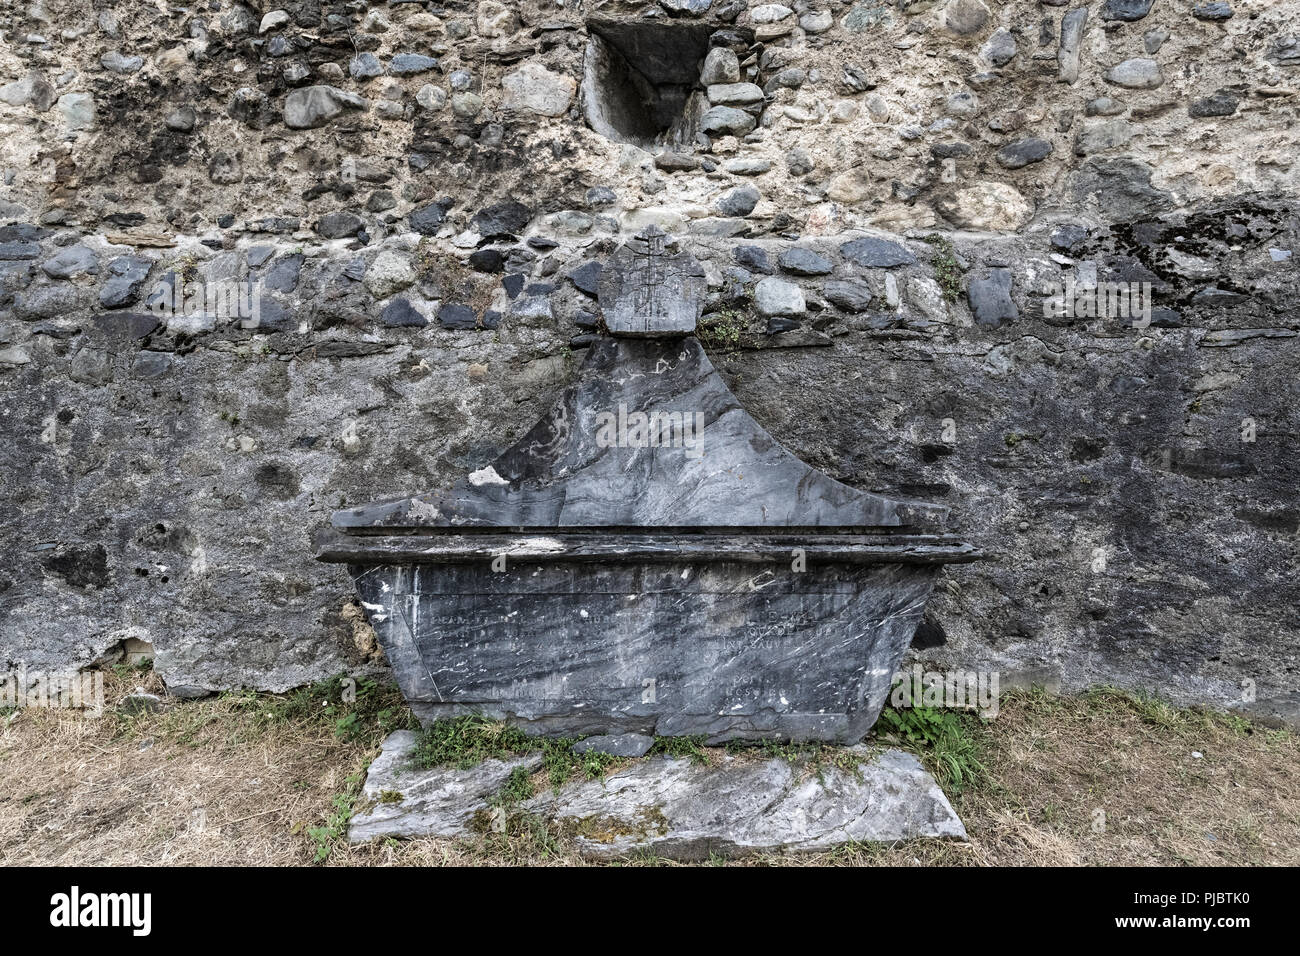 Fortified medieval church of the Templars situated in the french Pyrénées mountains, it's graveyard containing Knights of the Templars. - Stock Image